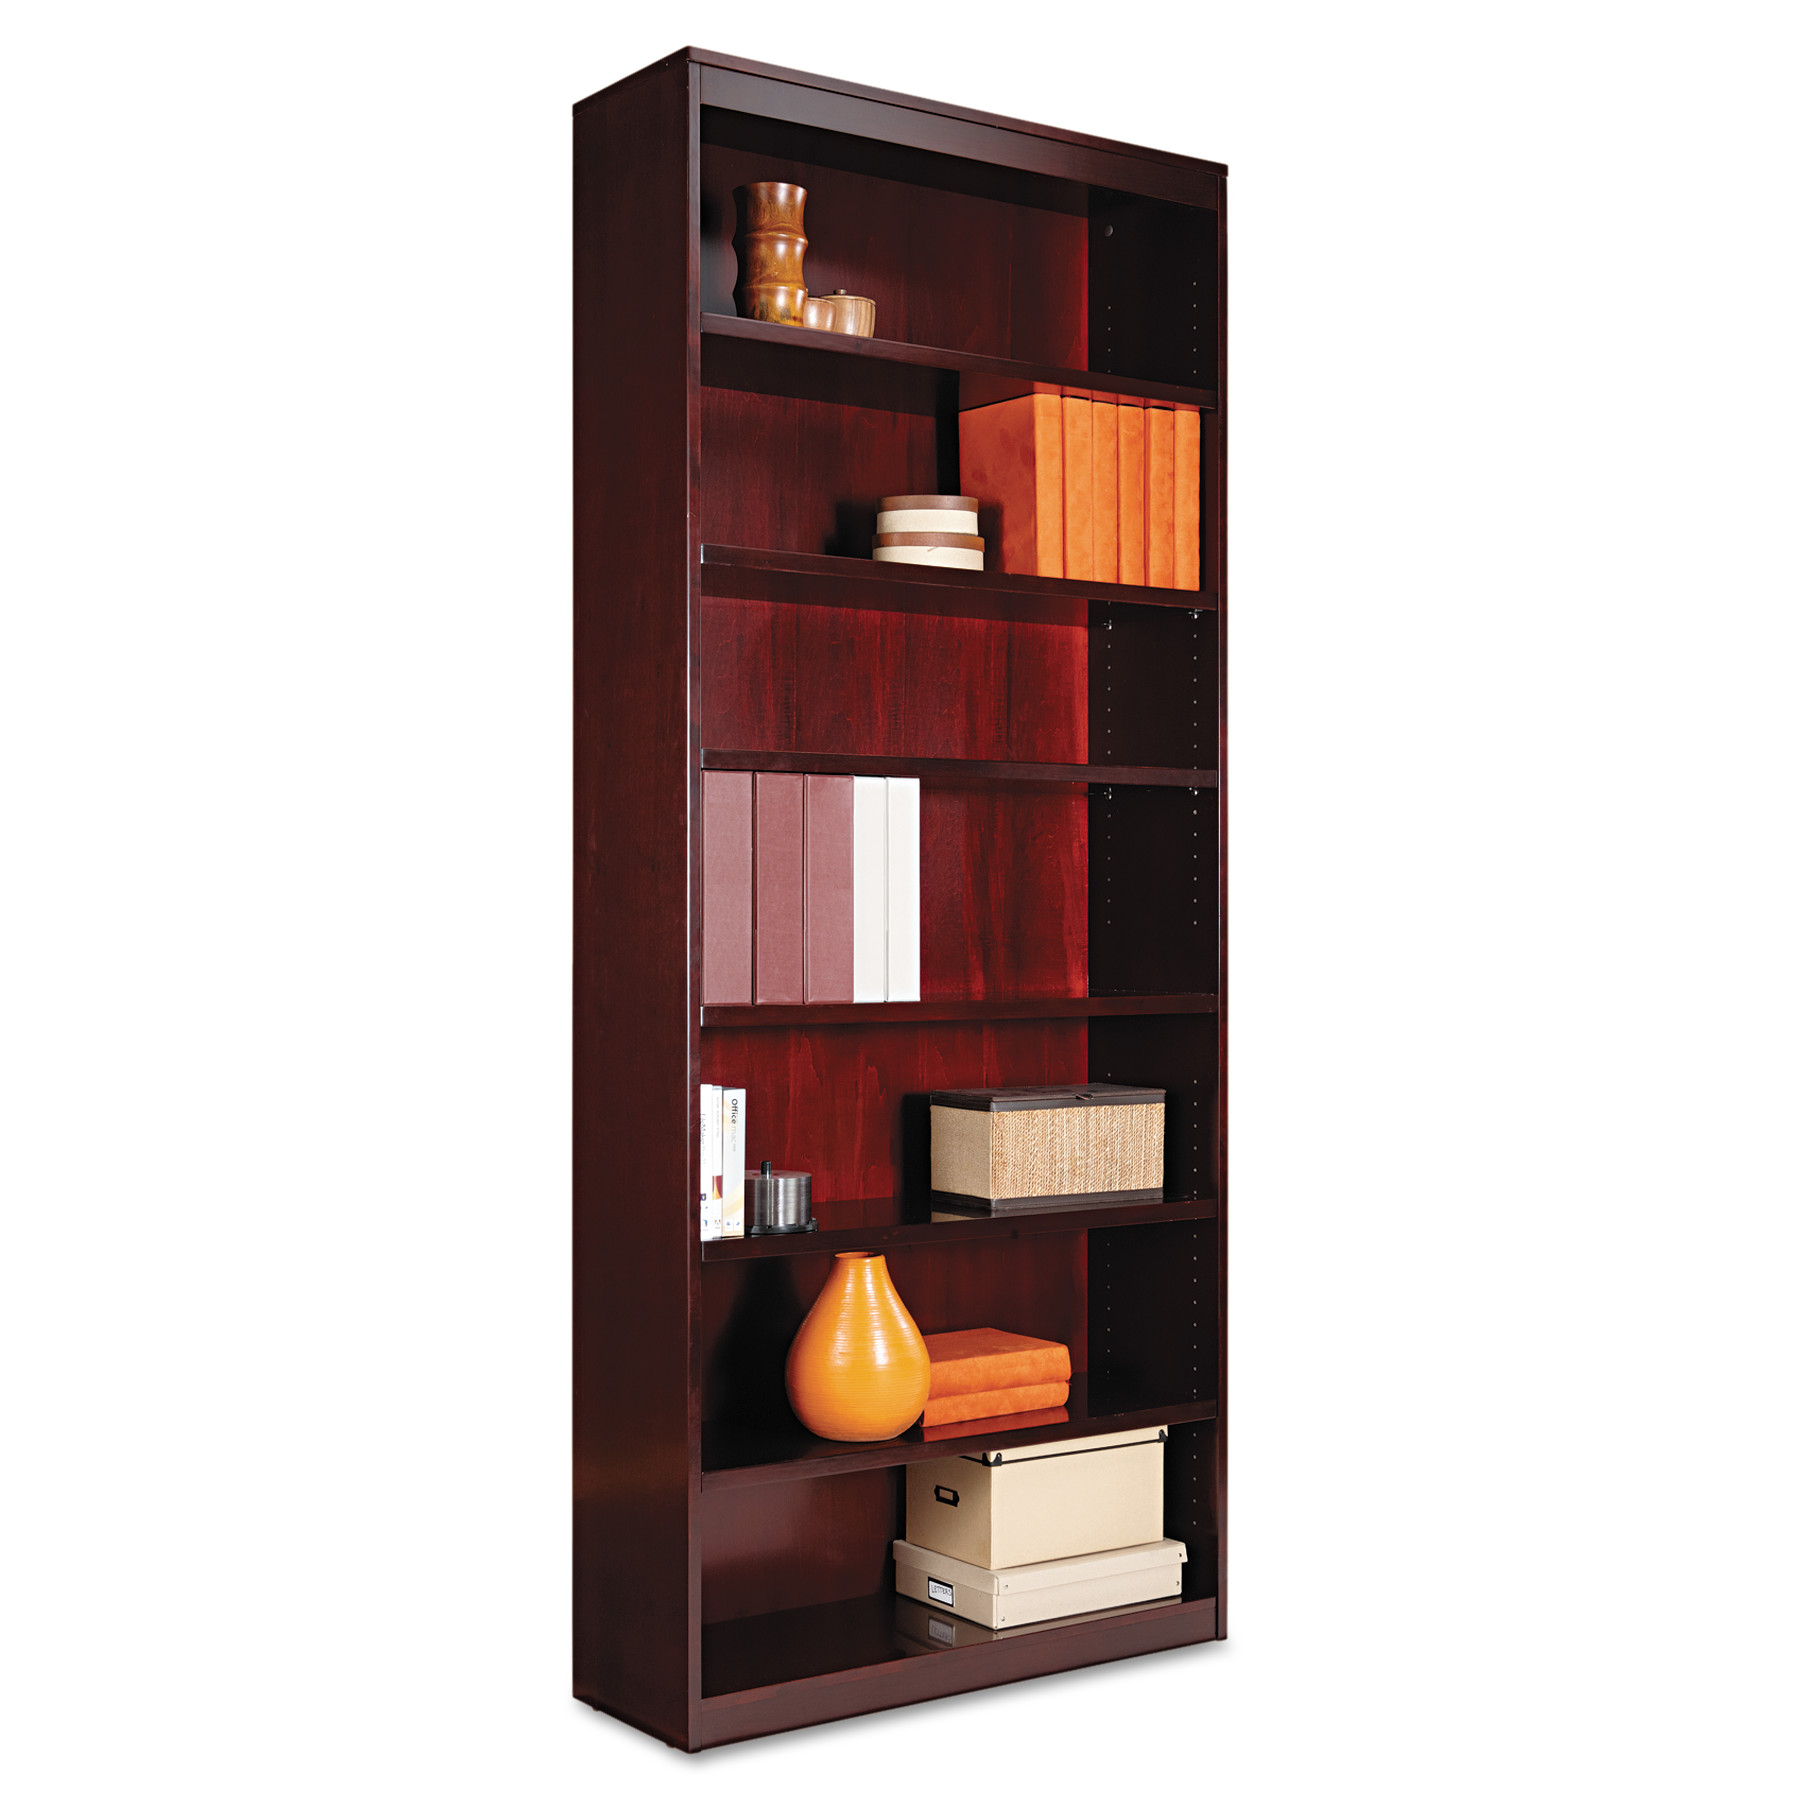 Alera Square Corner Wood Bookcase, Seven-Shelf, 35-5 8 x 11-3 4 x 84, Medium Cherry by ALERA